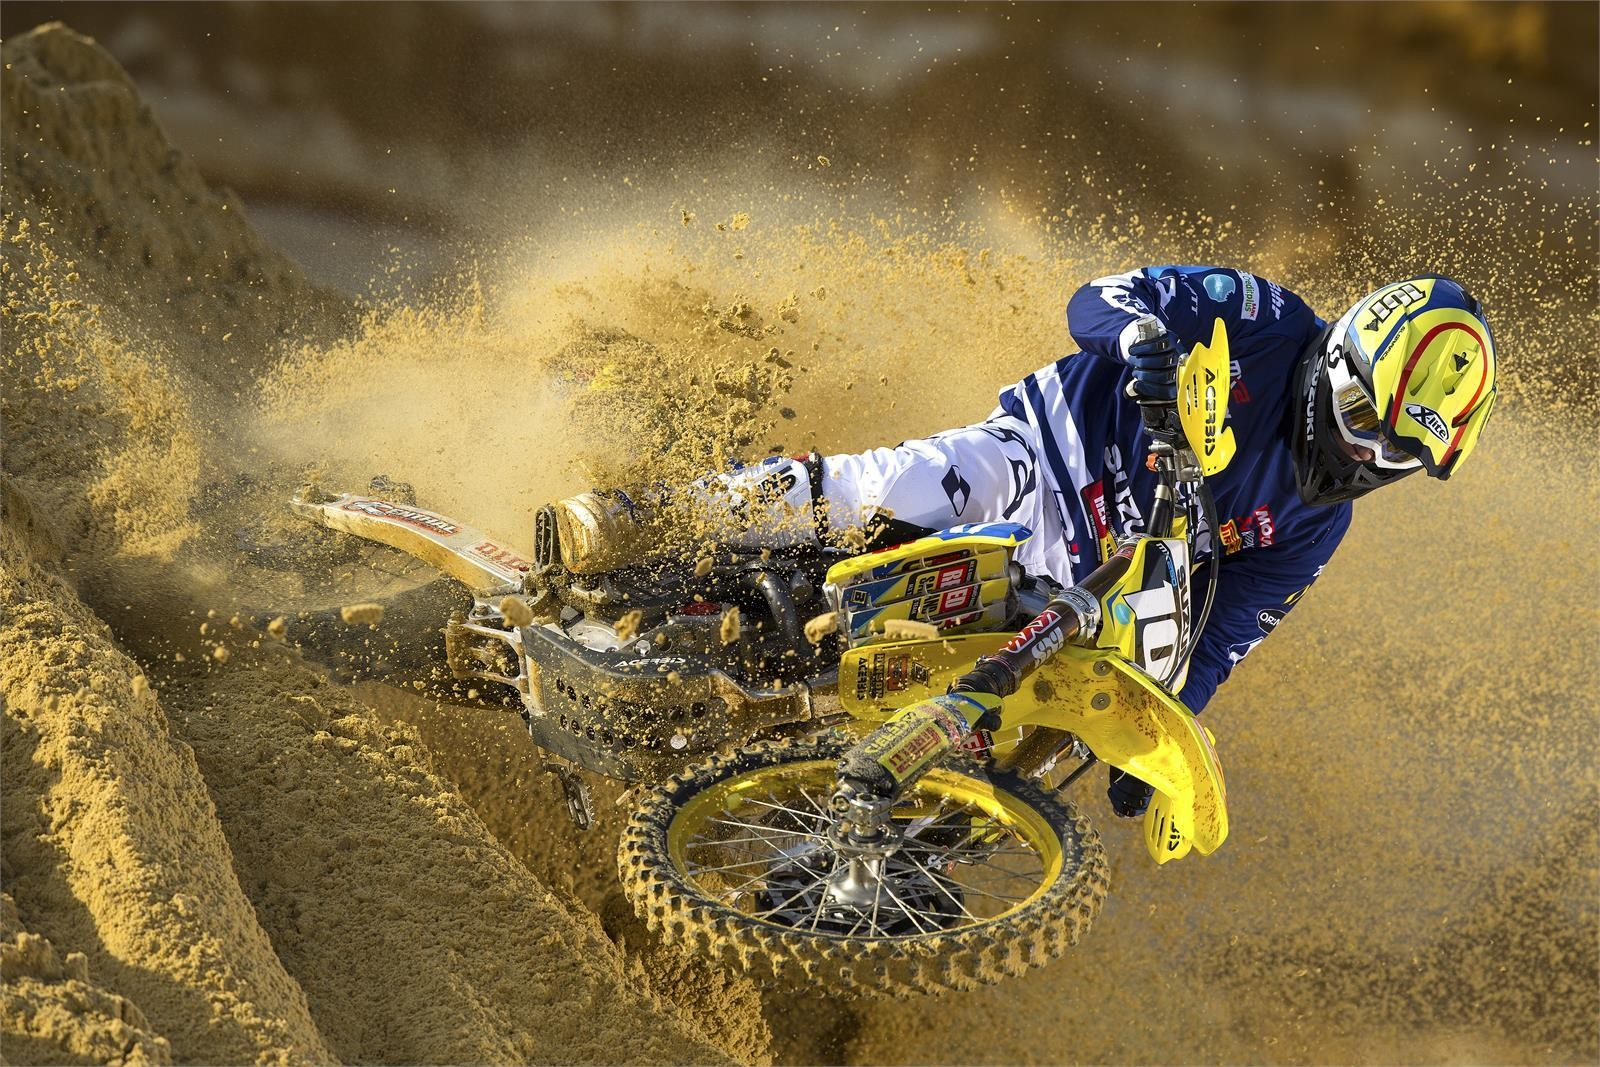 Zachary Pichon - First Look: 2017 Suzuki World MX2 Team - Motocross Pictures - Vital MX